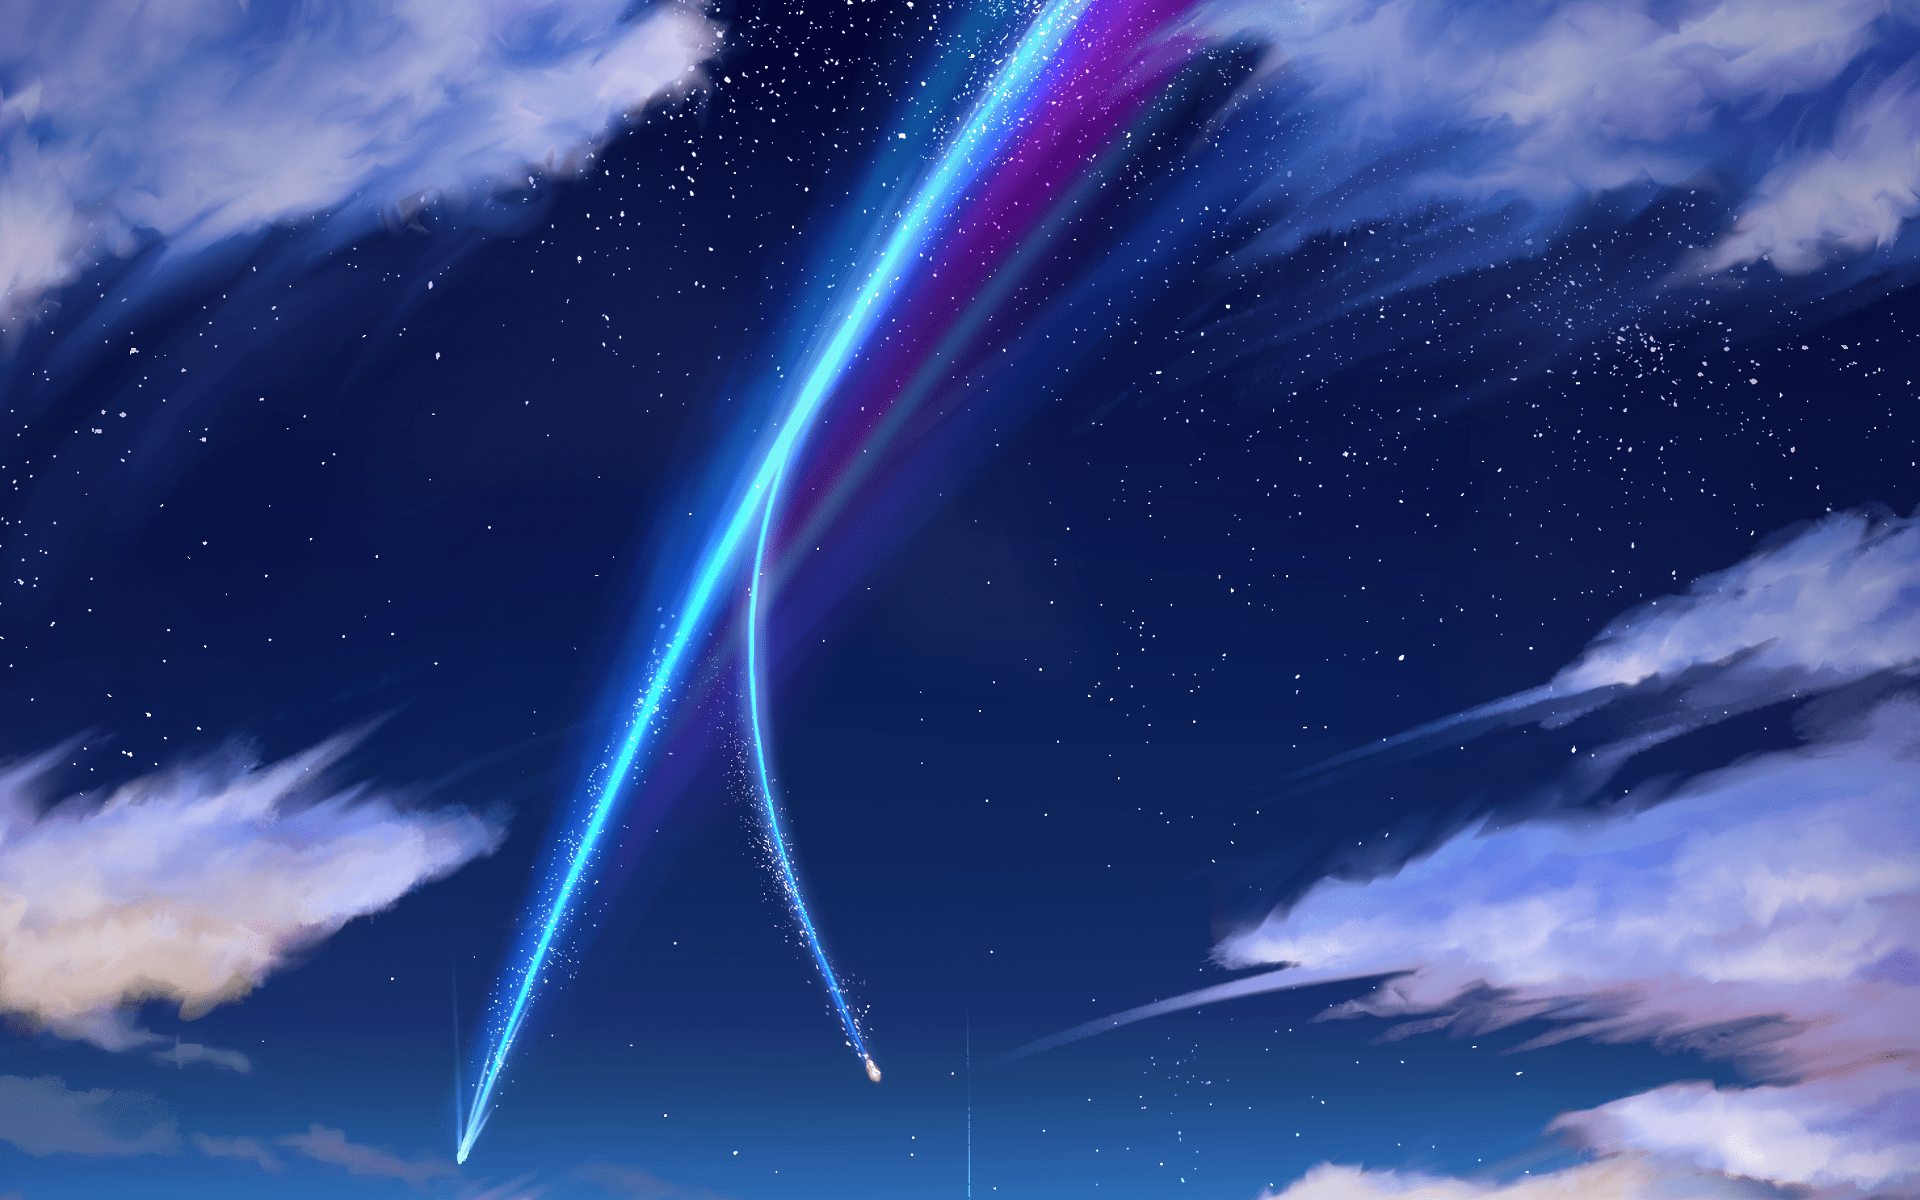 Kimi No Na Wa 4k Wallpaper Posted By Ethan Sellers